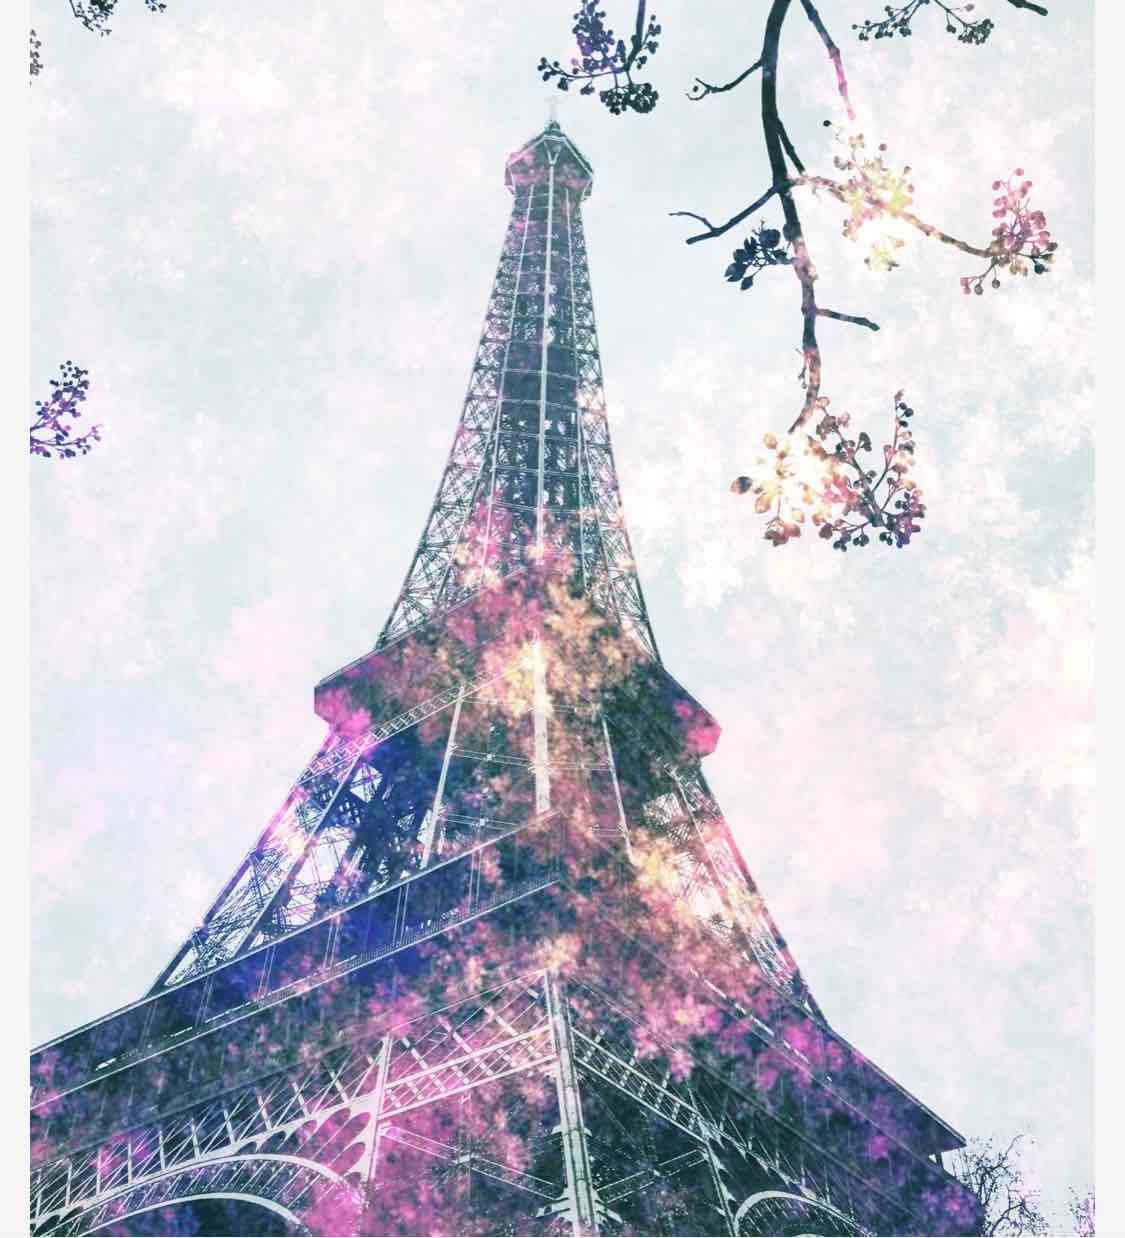 Eiffel Tower Edit